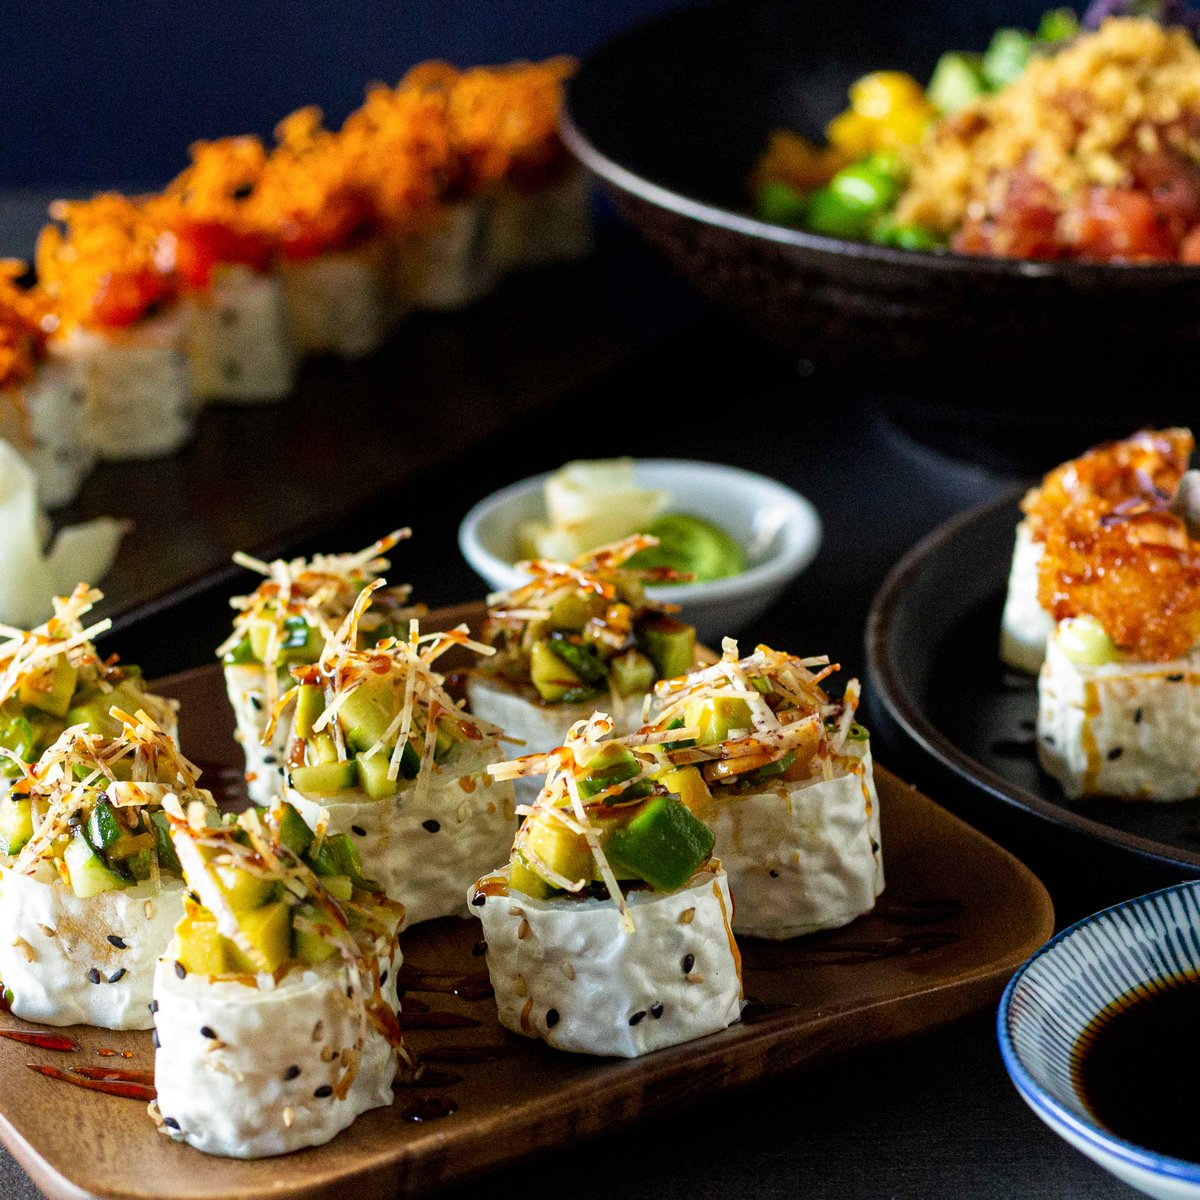 Cactus Club Cafe On Twitter Sushi Glorious Sushi Now Introducing Three New Flavour Packed Sushi Rolls At Our New Cactus Club Cafe Station Square Near Metrotown The Prawn Crunch Roll Spicy Ahi Roll Restaurant guru 2019 best sushi square sushi. cactus club cafe station square